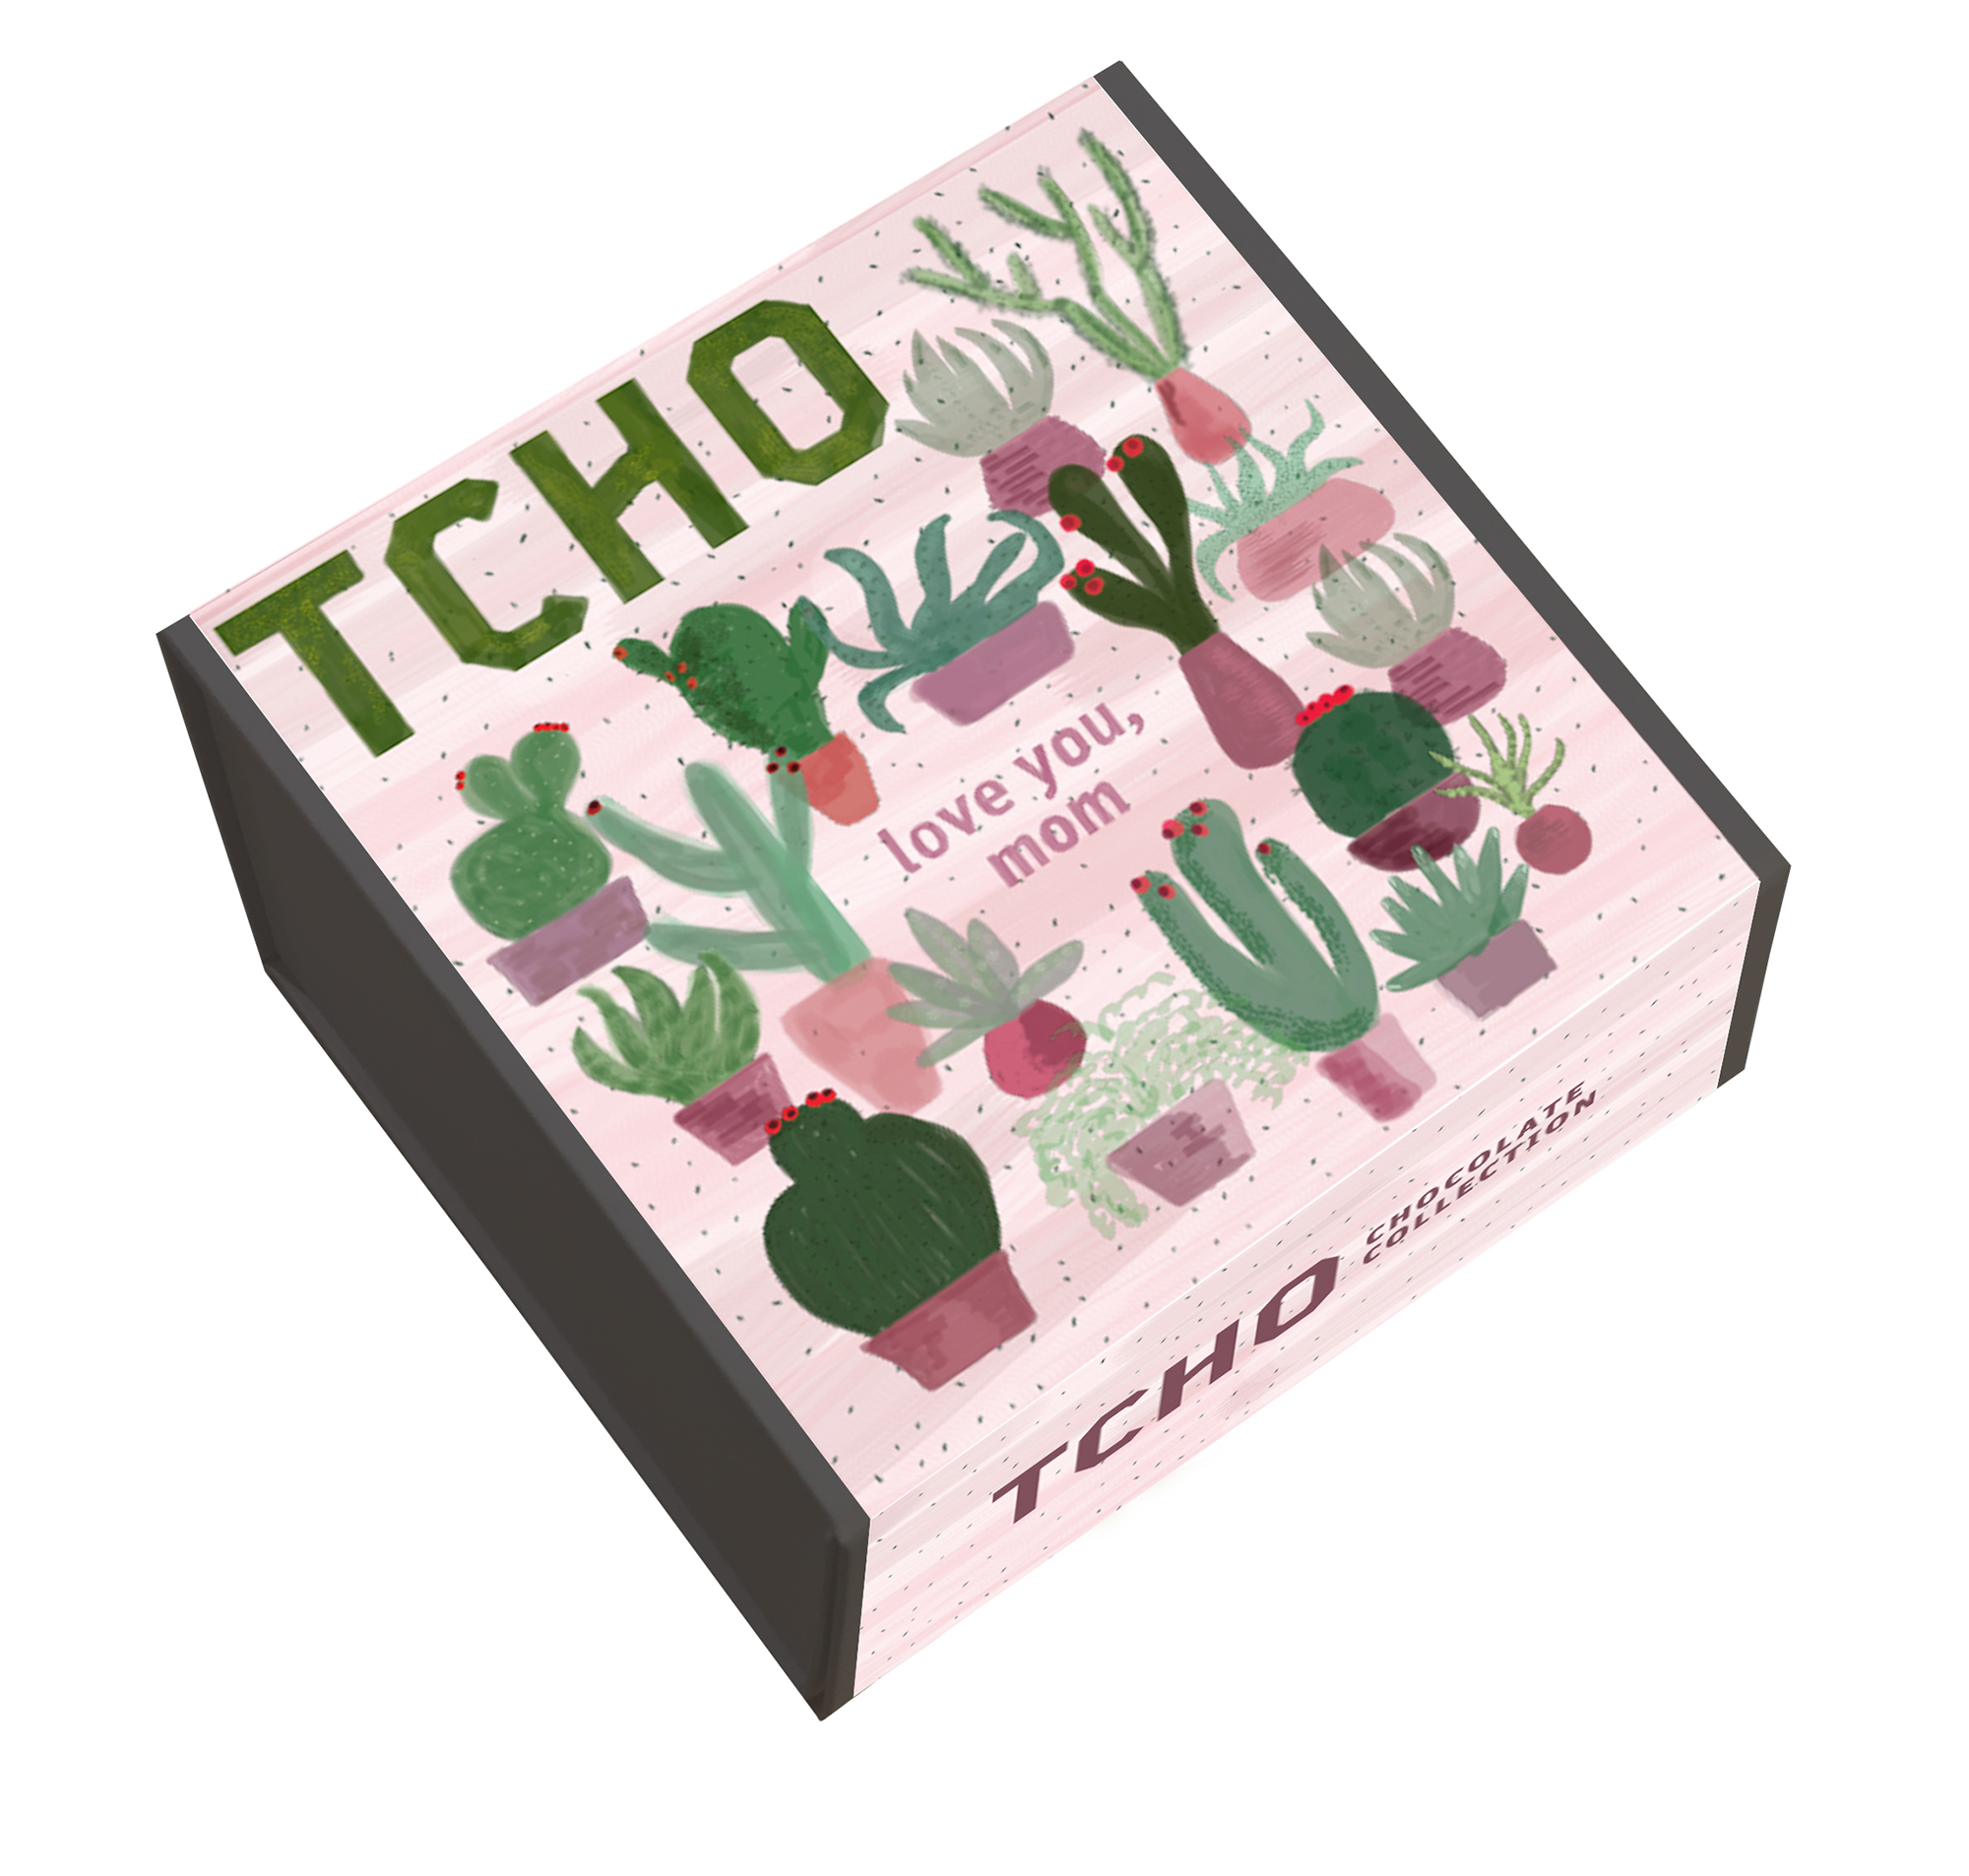 """TCHO-Mother's-Day-Succulents-Gift-Box-36x8g-Chocolate-Collection - One box, 36 chocolate bars. What a sweet way to say, """"Happy Mother's Day."""" $25.99, tcho.com"""